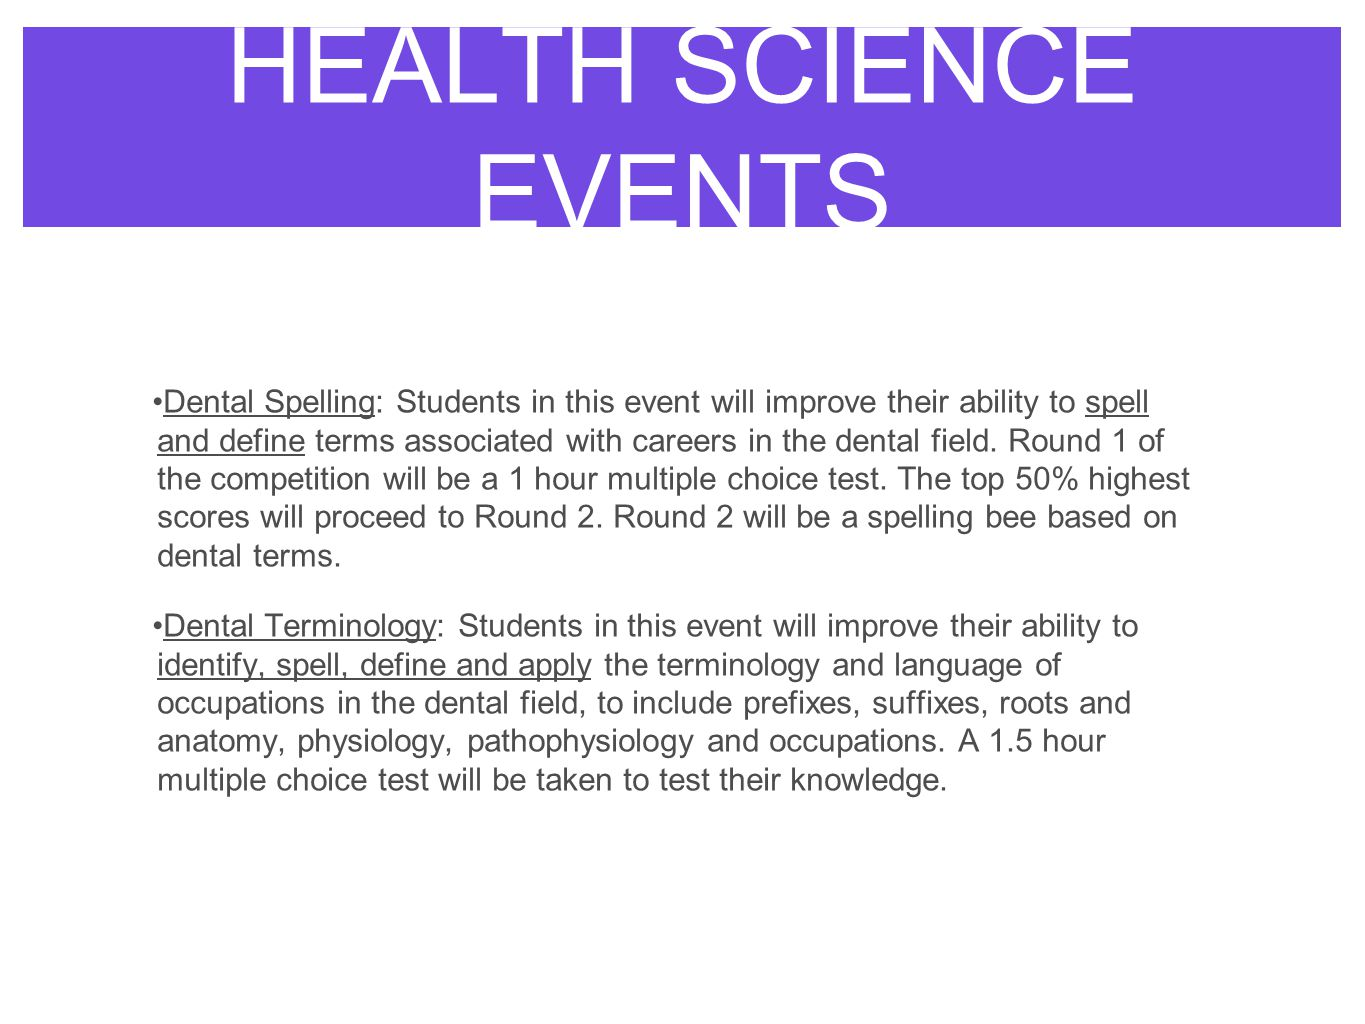 HEALTH SCIENCE EVENTS Dental Spelling: Students in this event will improve  their ability to spell